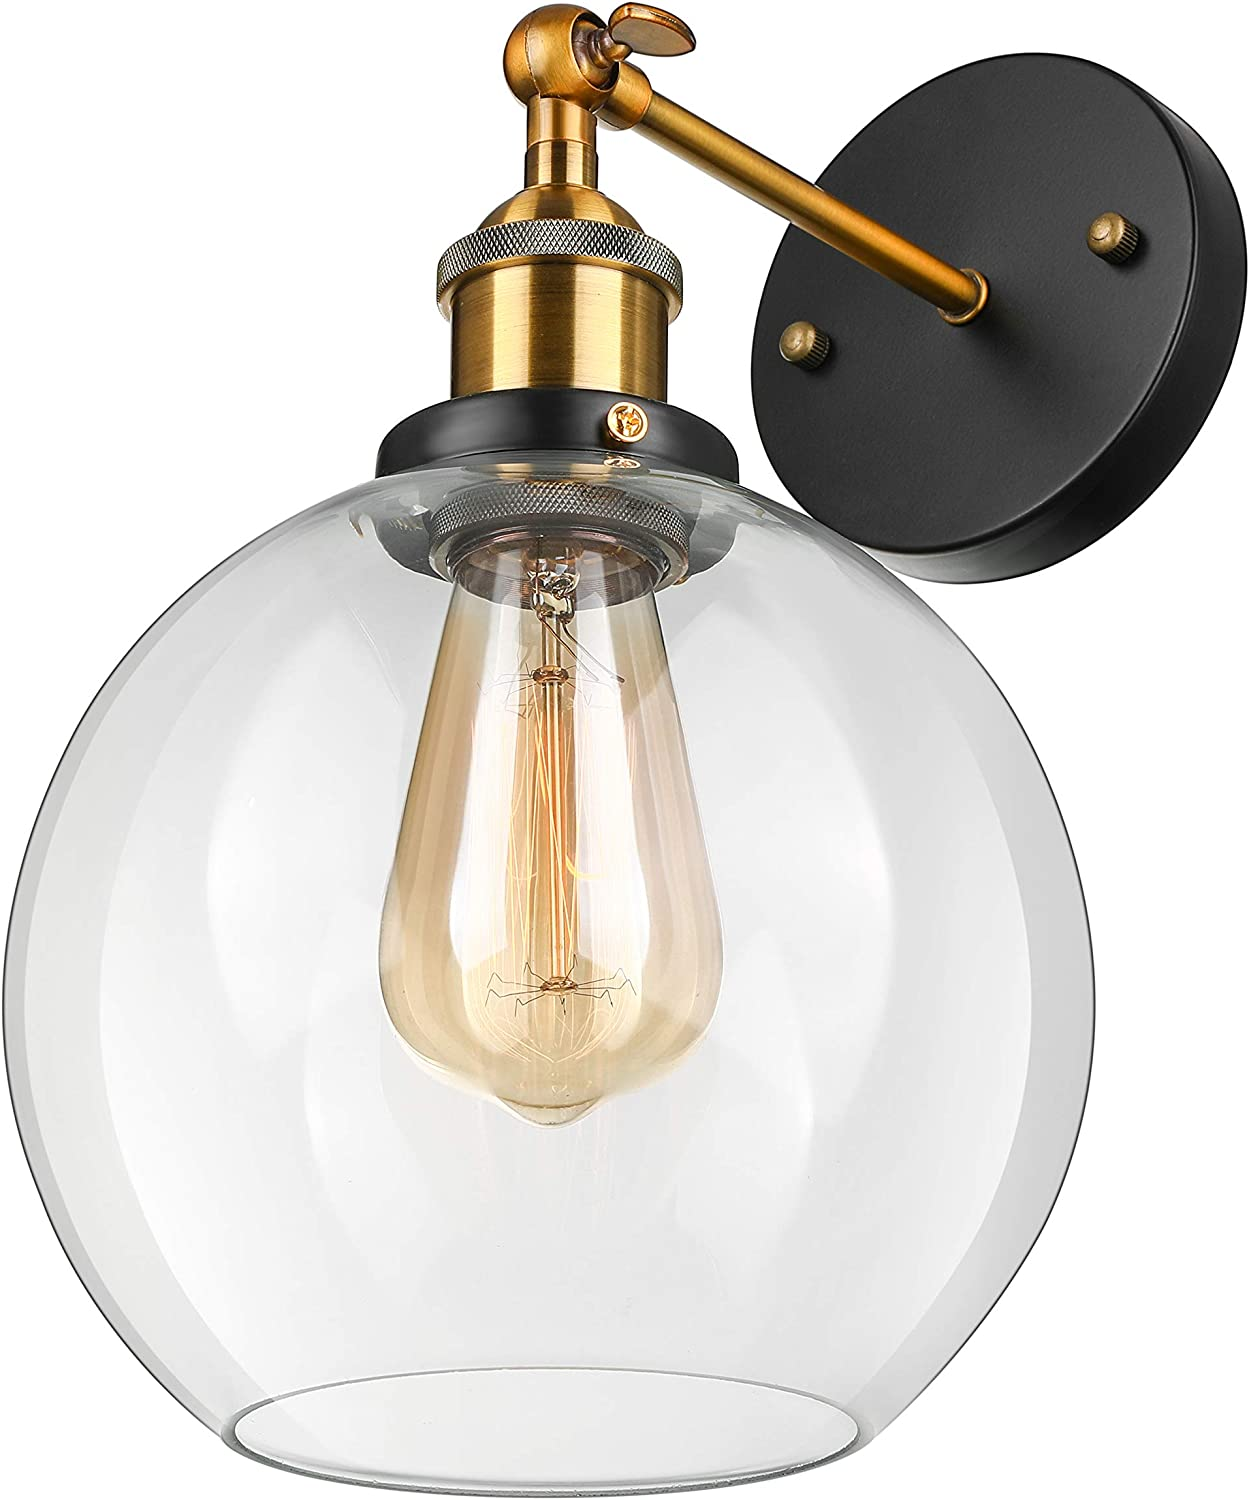 BAYCHEER Industrial Light Fixture Glass Shade Modern Wall Sconce for Bedroom Lobby Modern Wall Sconce Single Wall Decoration Globe Shape Wall Sconce Lighting (Brass)